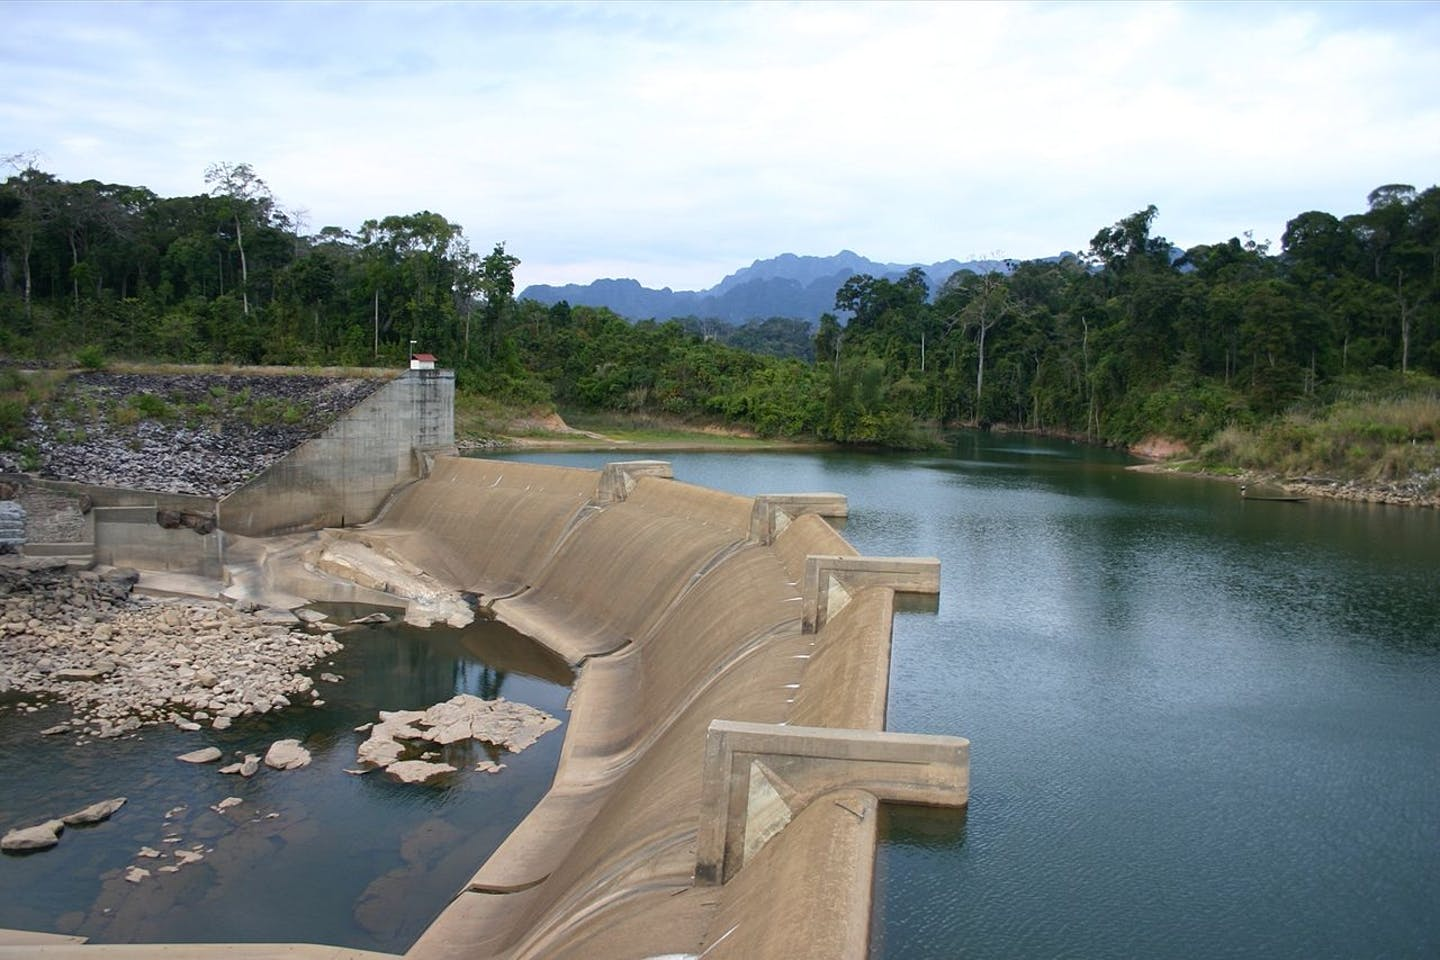 Southern Central Laos dam